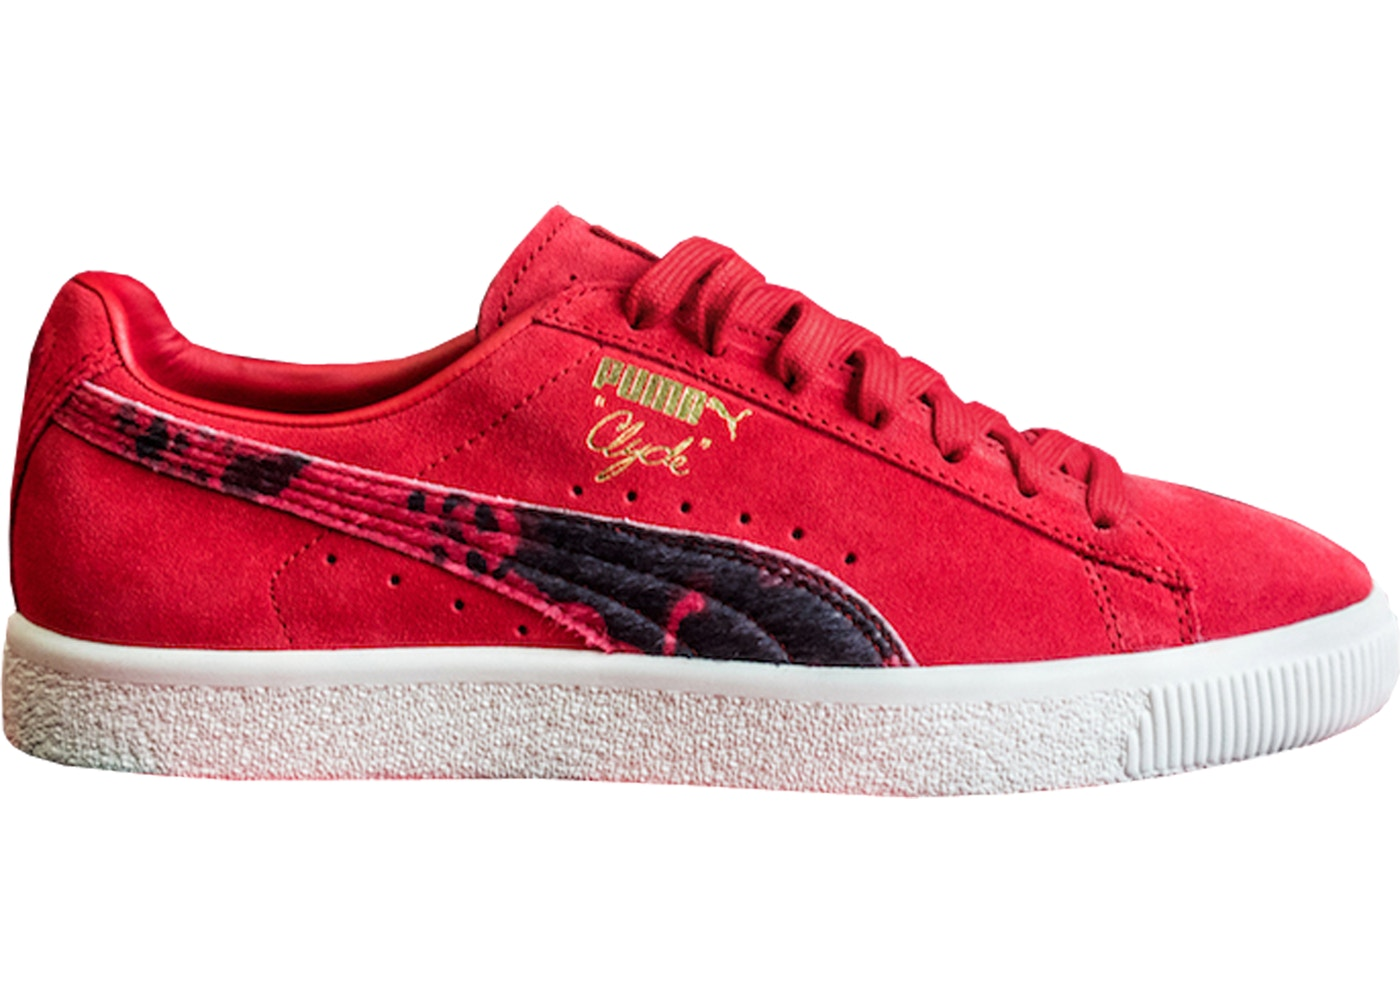 new arrival 0a13c 60fb1 Puma Clyde Packer Shoes Cow Suit Red